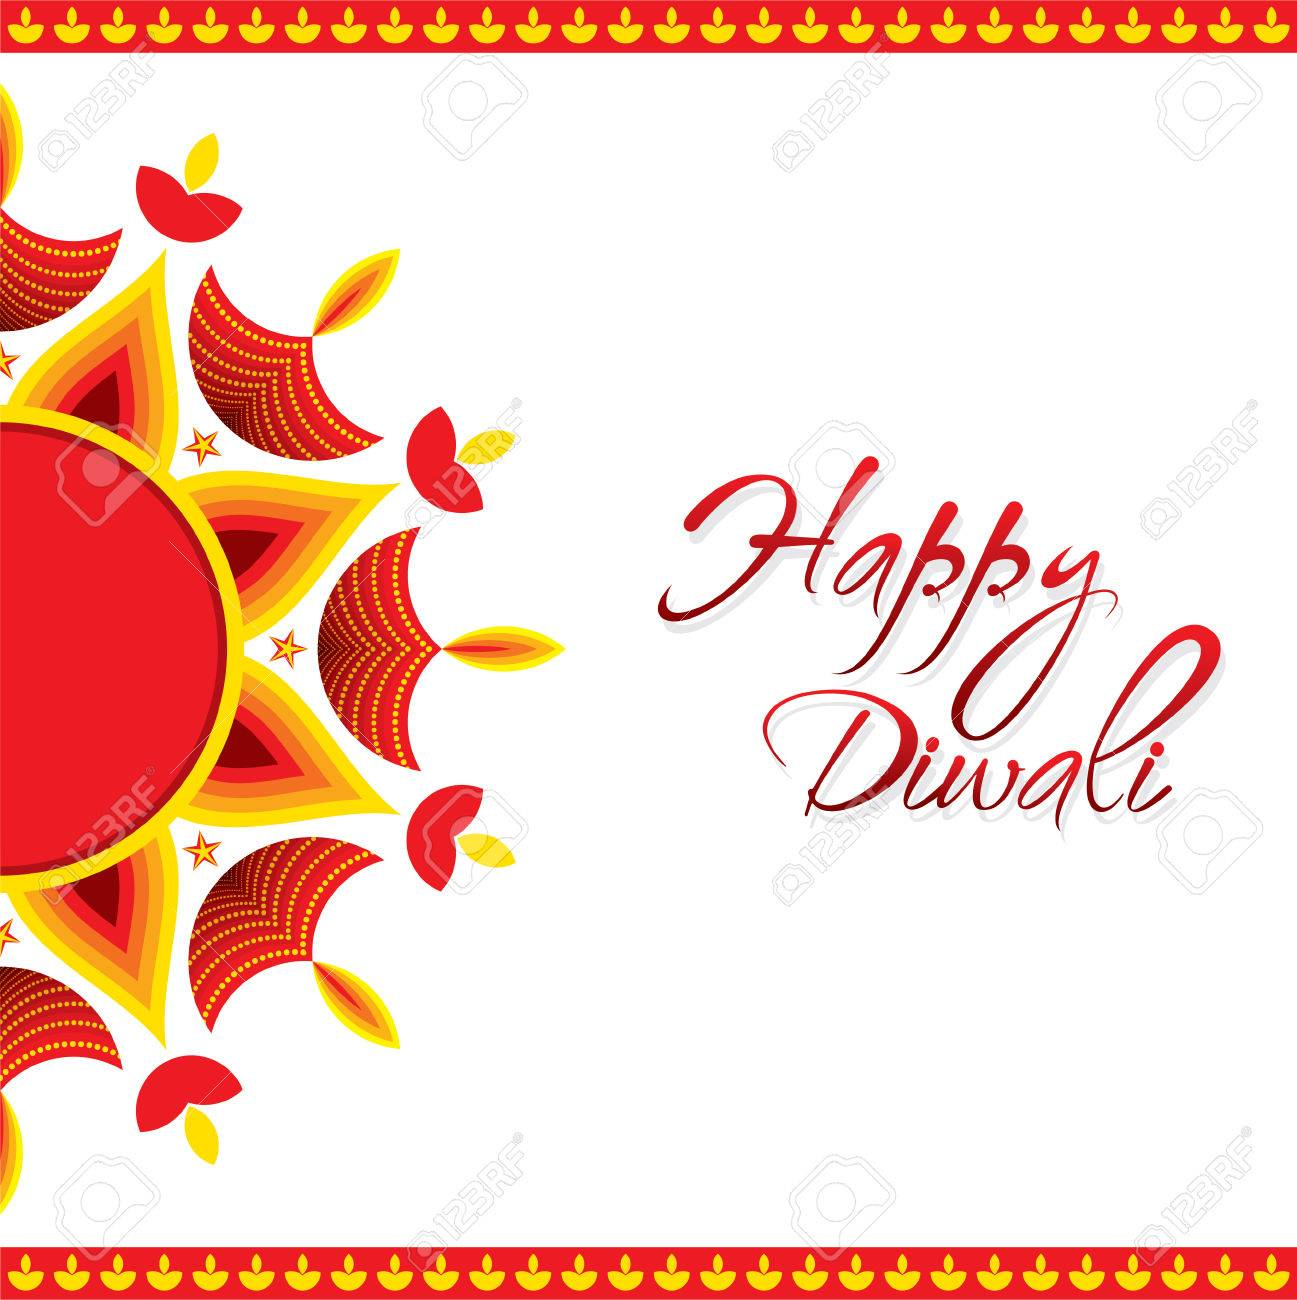 Creative Happy Diwali Greeting Card Design Vector Royalty Free